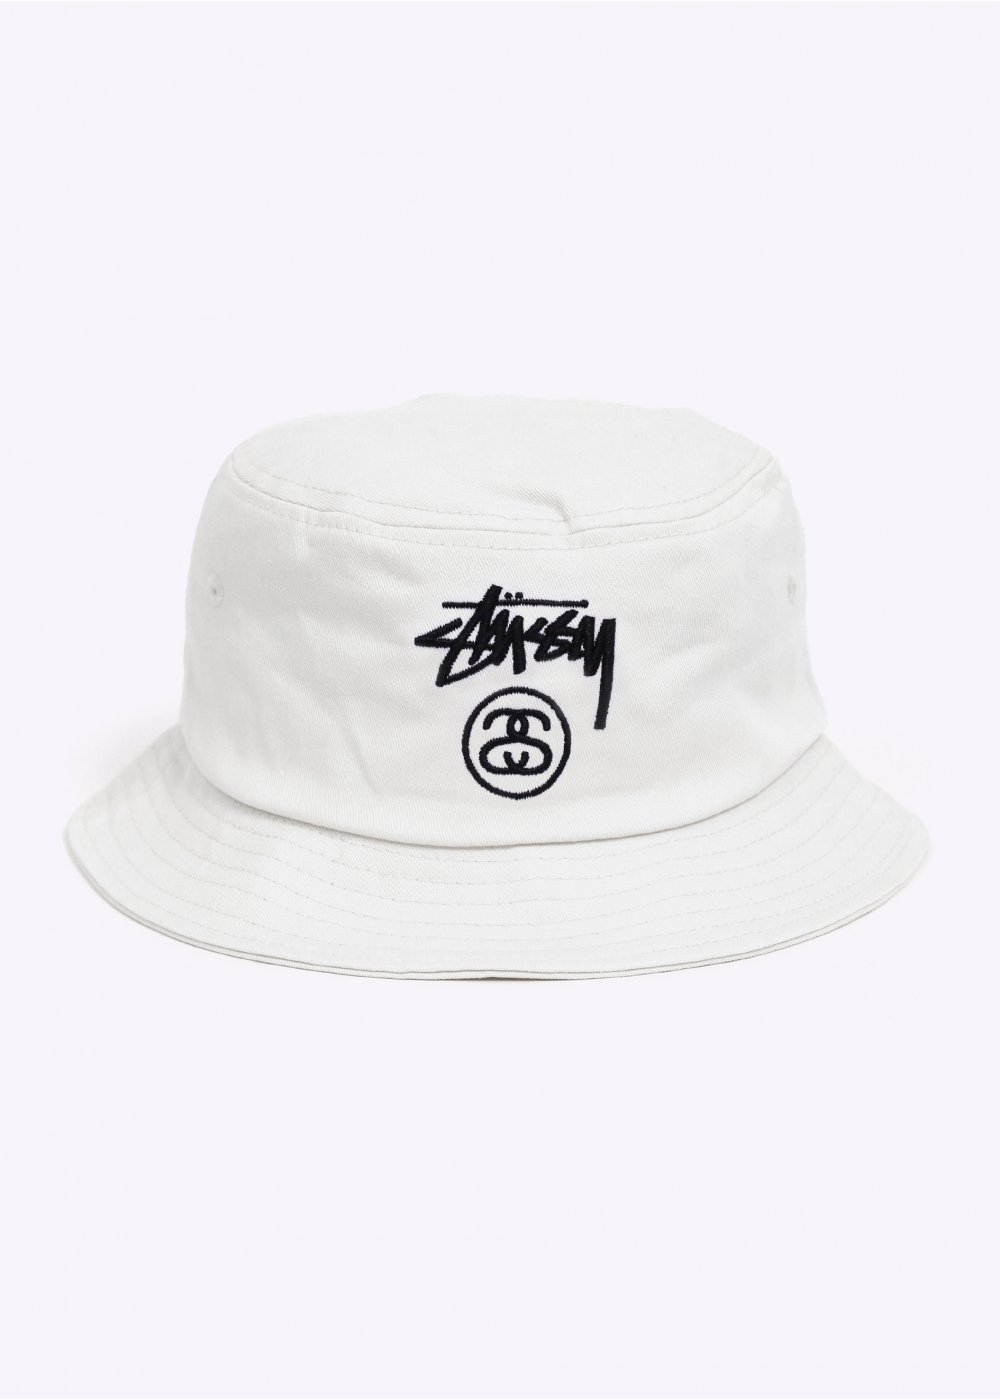 6f15c3dc4f9d8 Stussy Stock Lock Bucket Hat - White